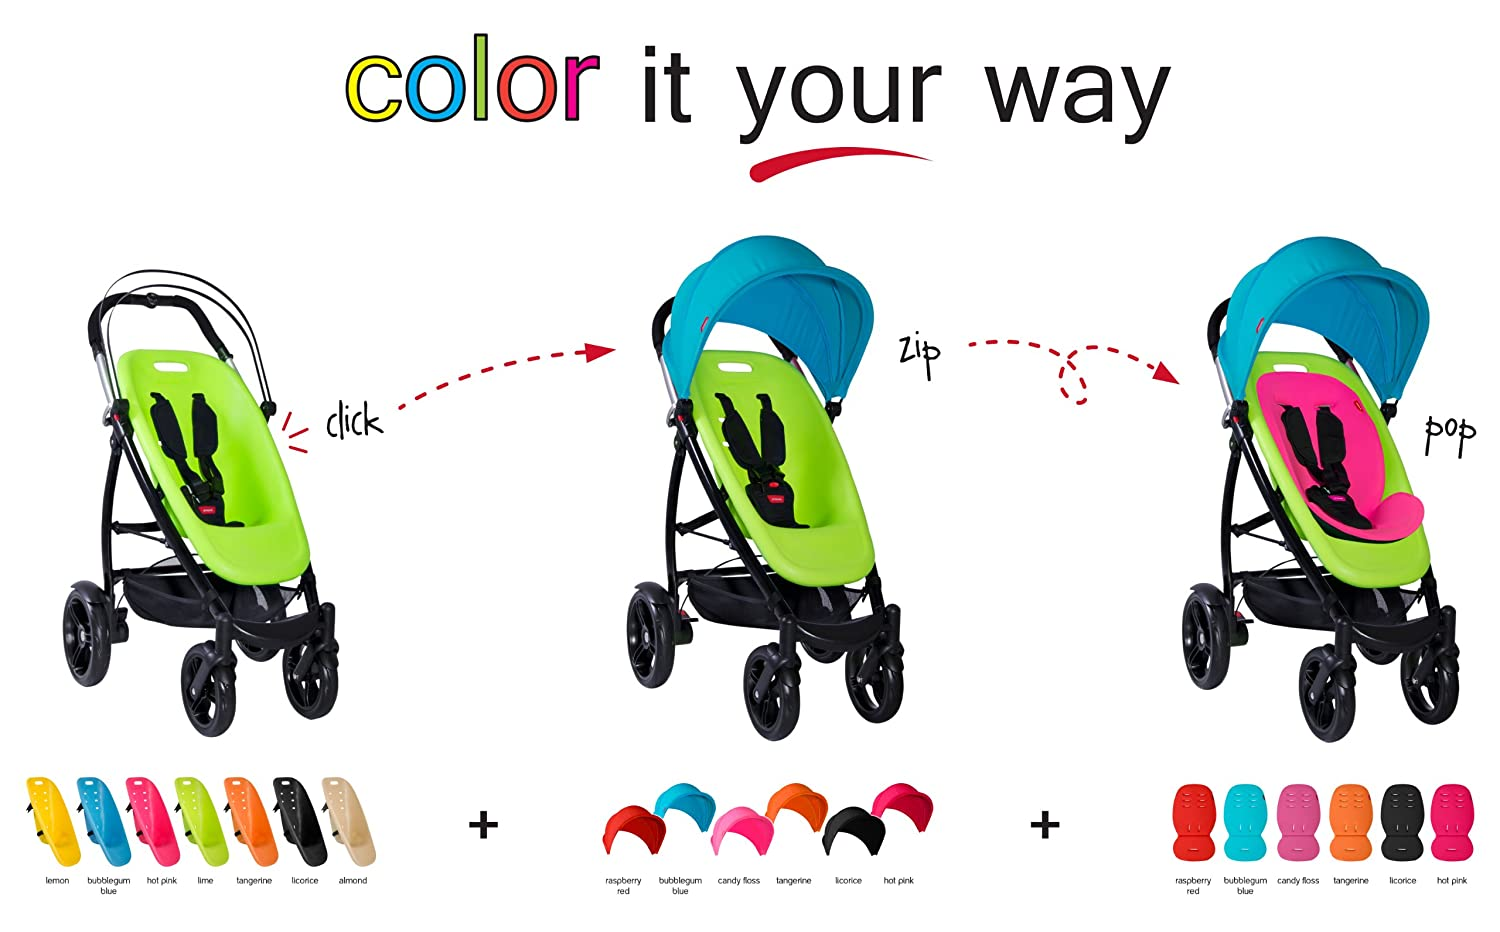 phil teds Smart Customizable Frame Stroller, Black